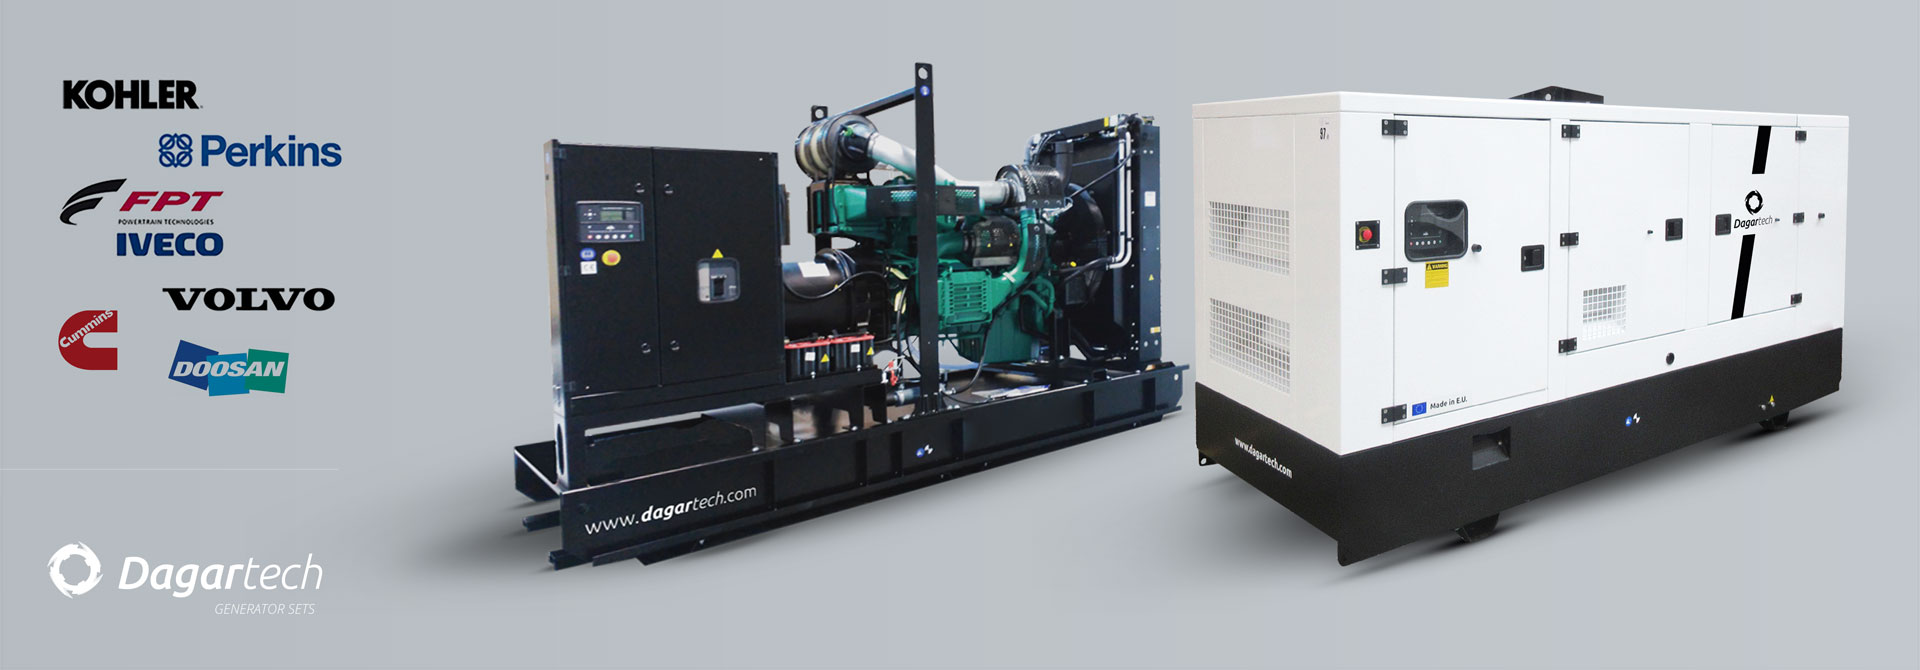 Dagartech Industrial generator sets for use in hospital sector applications with Kohler, Perkins, Iveco, Cummins, Doosan or Volvo water cooled engines